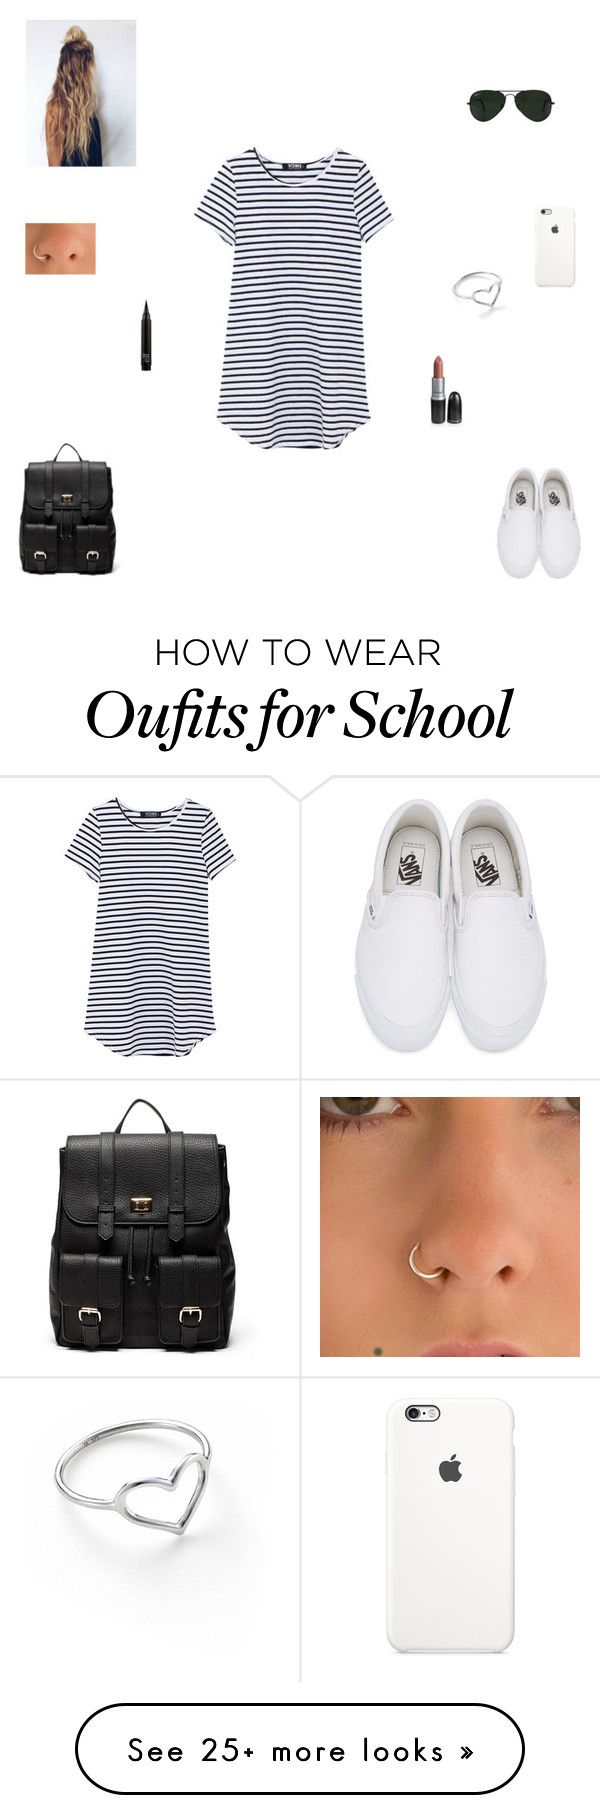 """back to school outfit #2"" by synclairel on Polyvore featuring Vans, Sole Society, Ray-Ban, Jordan Askill, Summer, cute, casual and ootd"